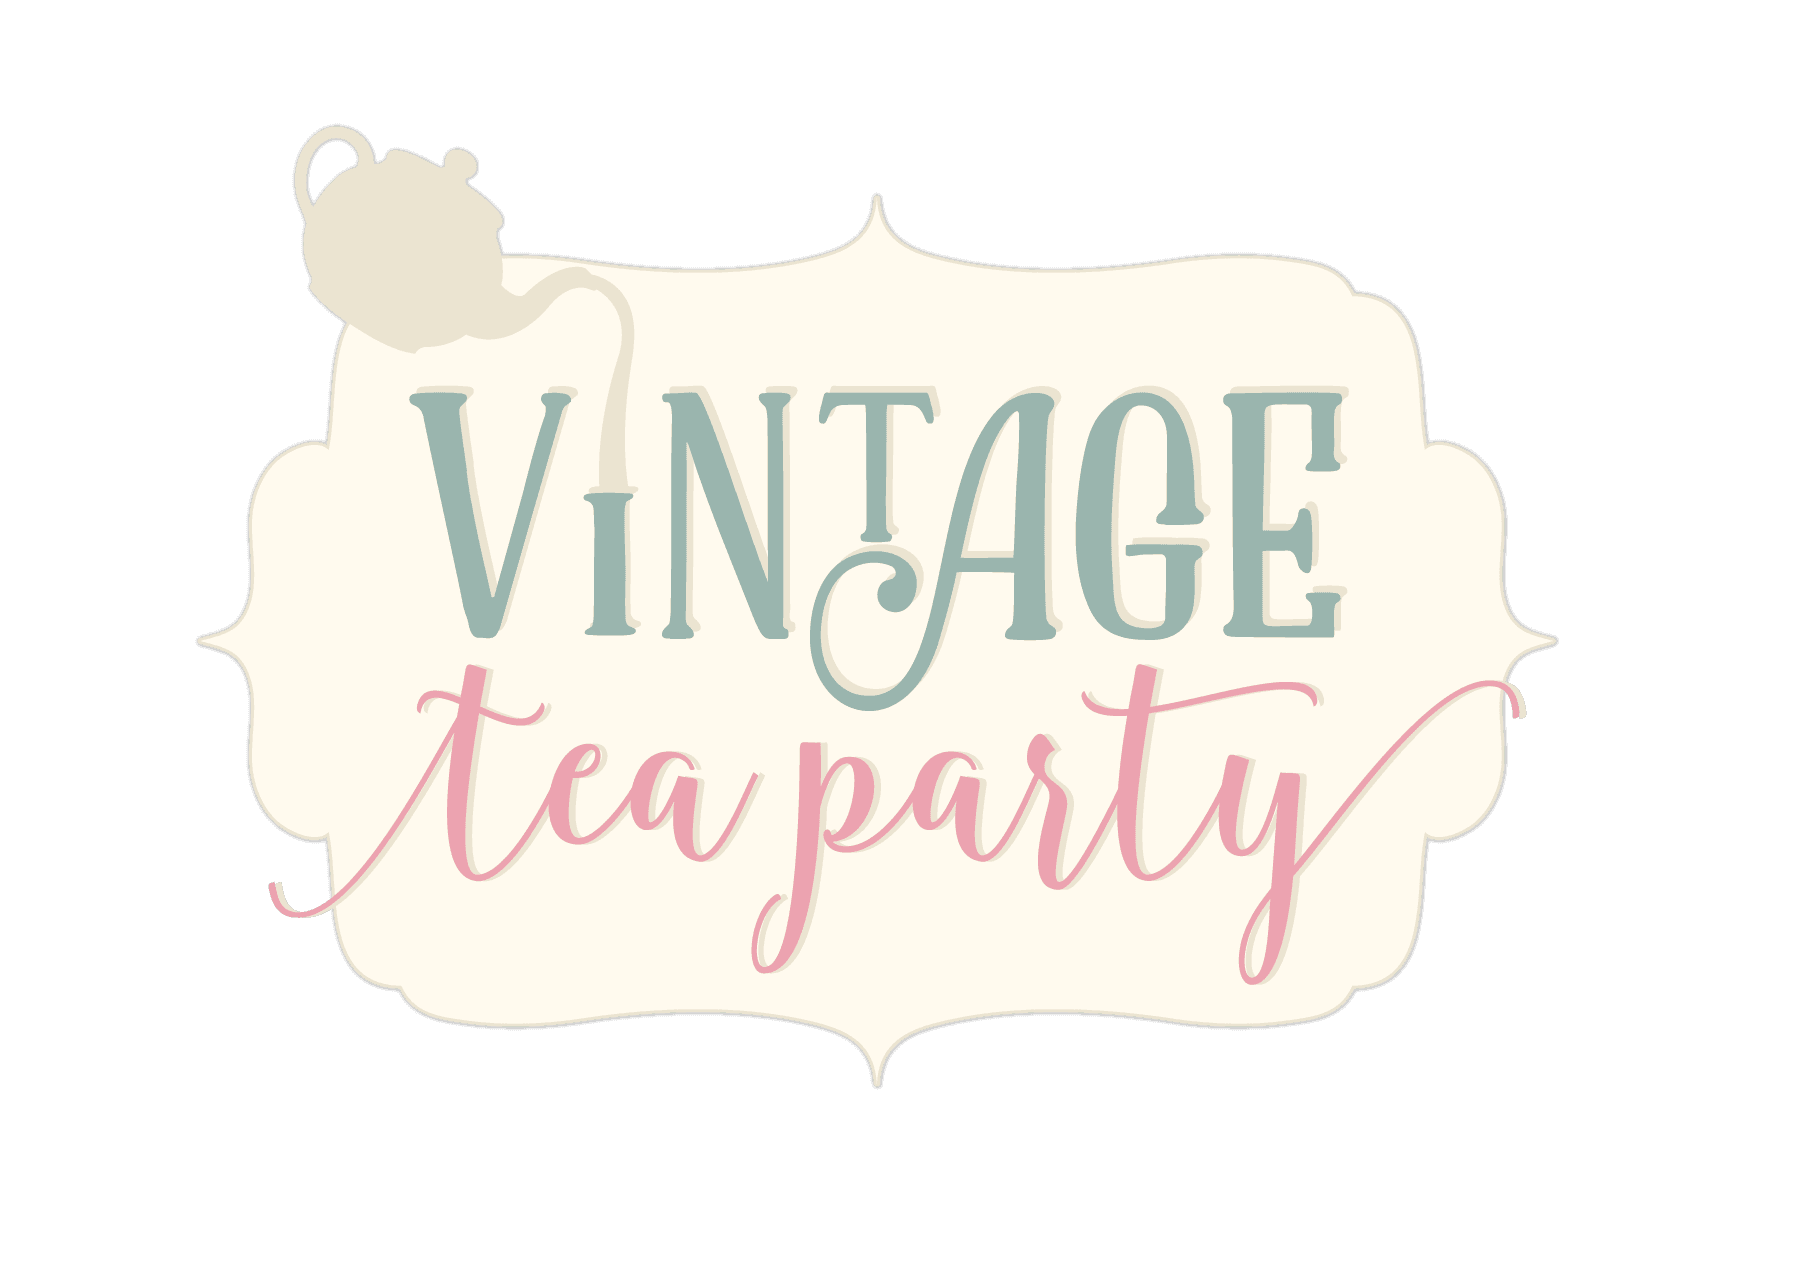 Sara Signature - Vintage Tea Party